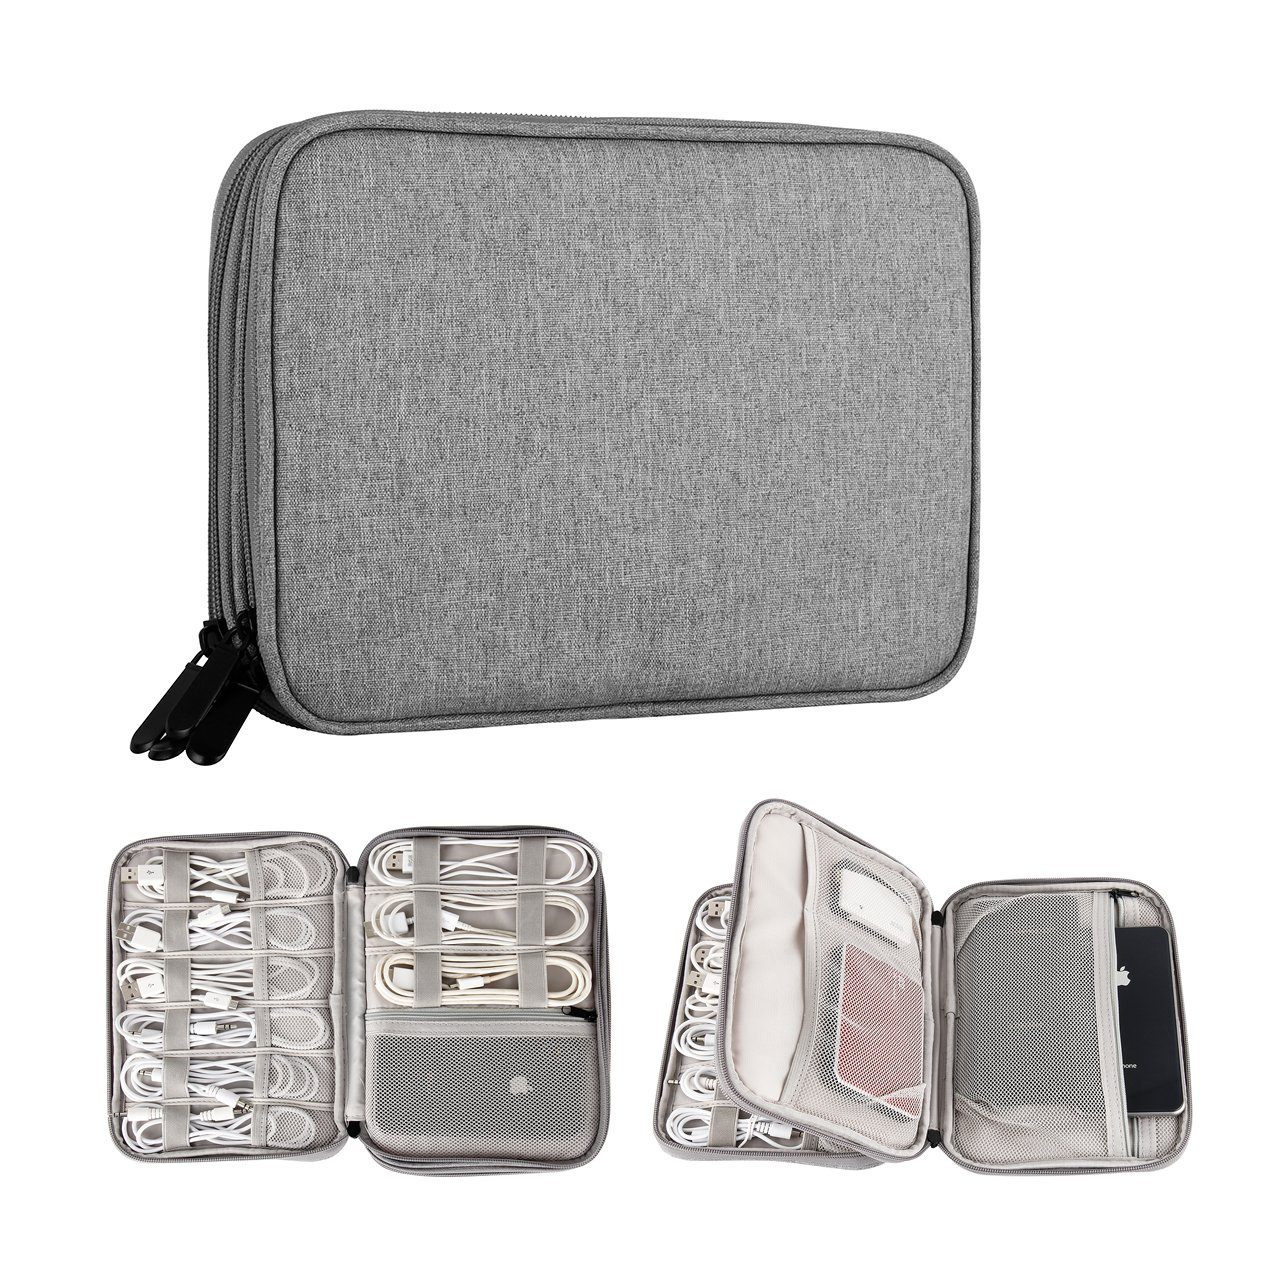 Electronic Organizer Bag, Wire Management Pouch, Double Layer Waterproof Cord Wrap organizer Travel Gadget Bag (Grey)